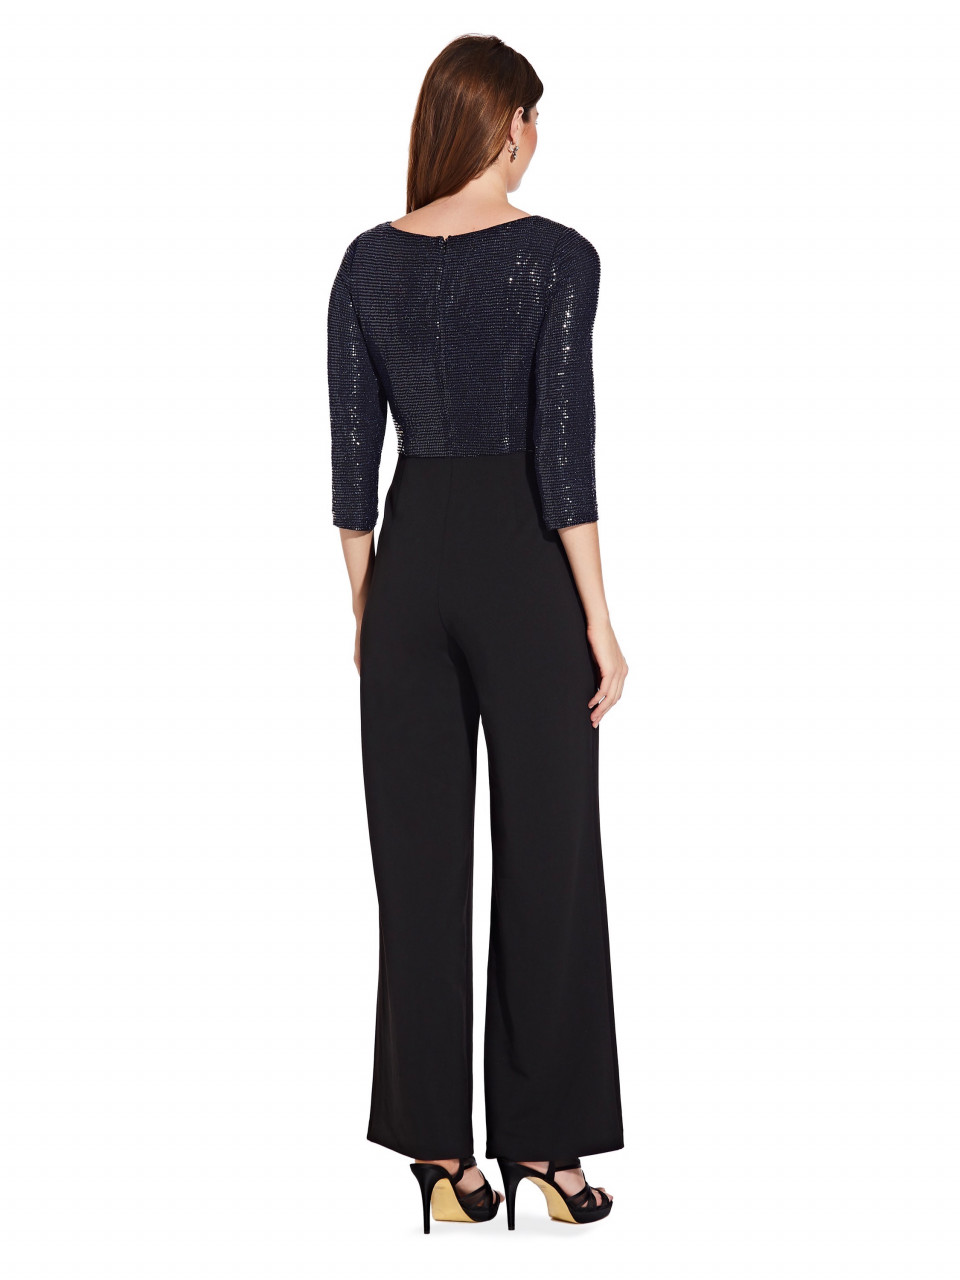 Sequin knit crepe jumpsuit